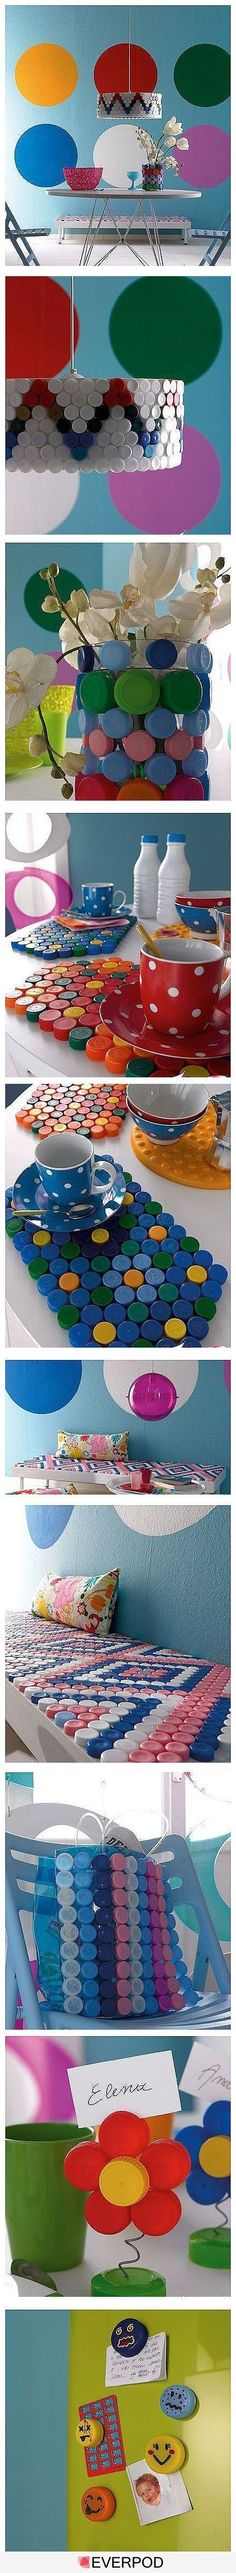 Recycling bottle caps